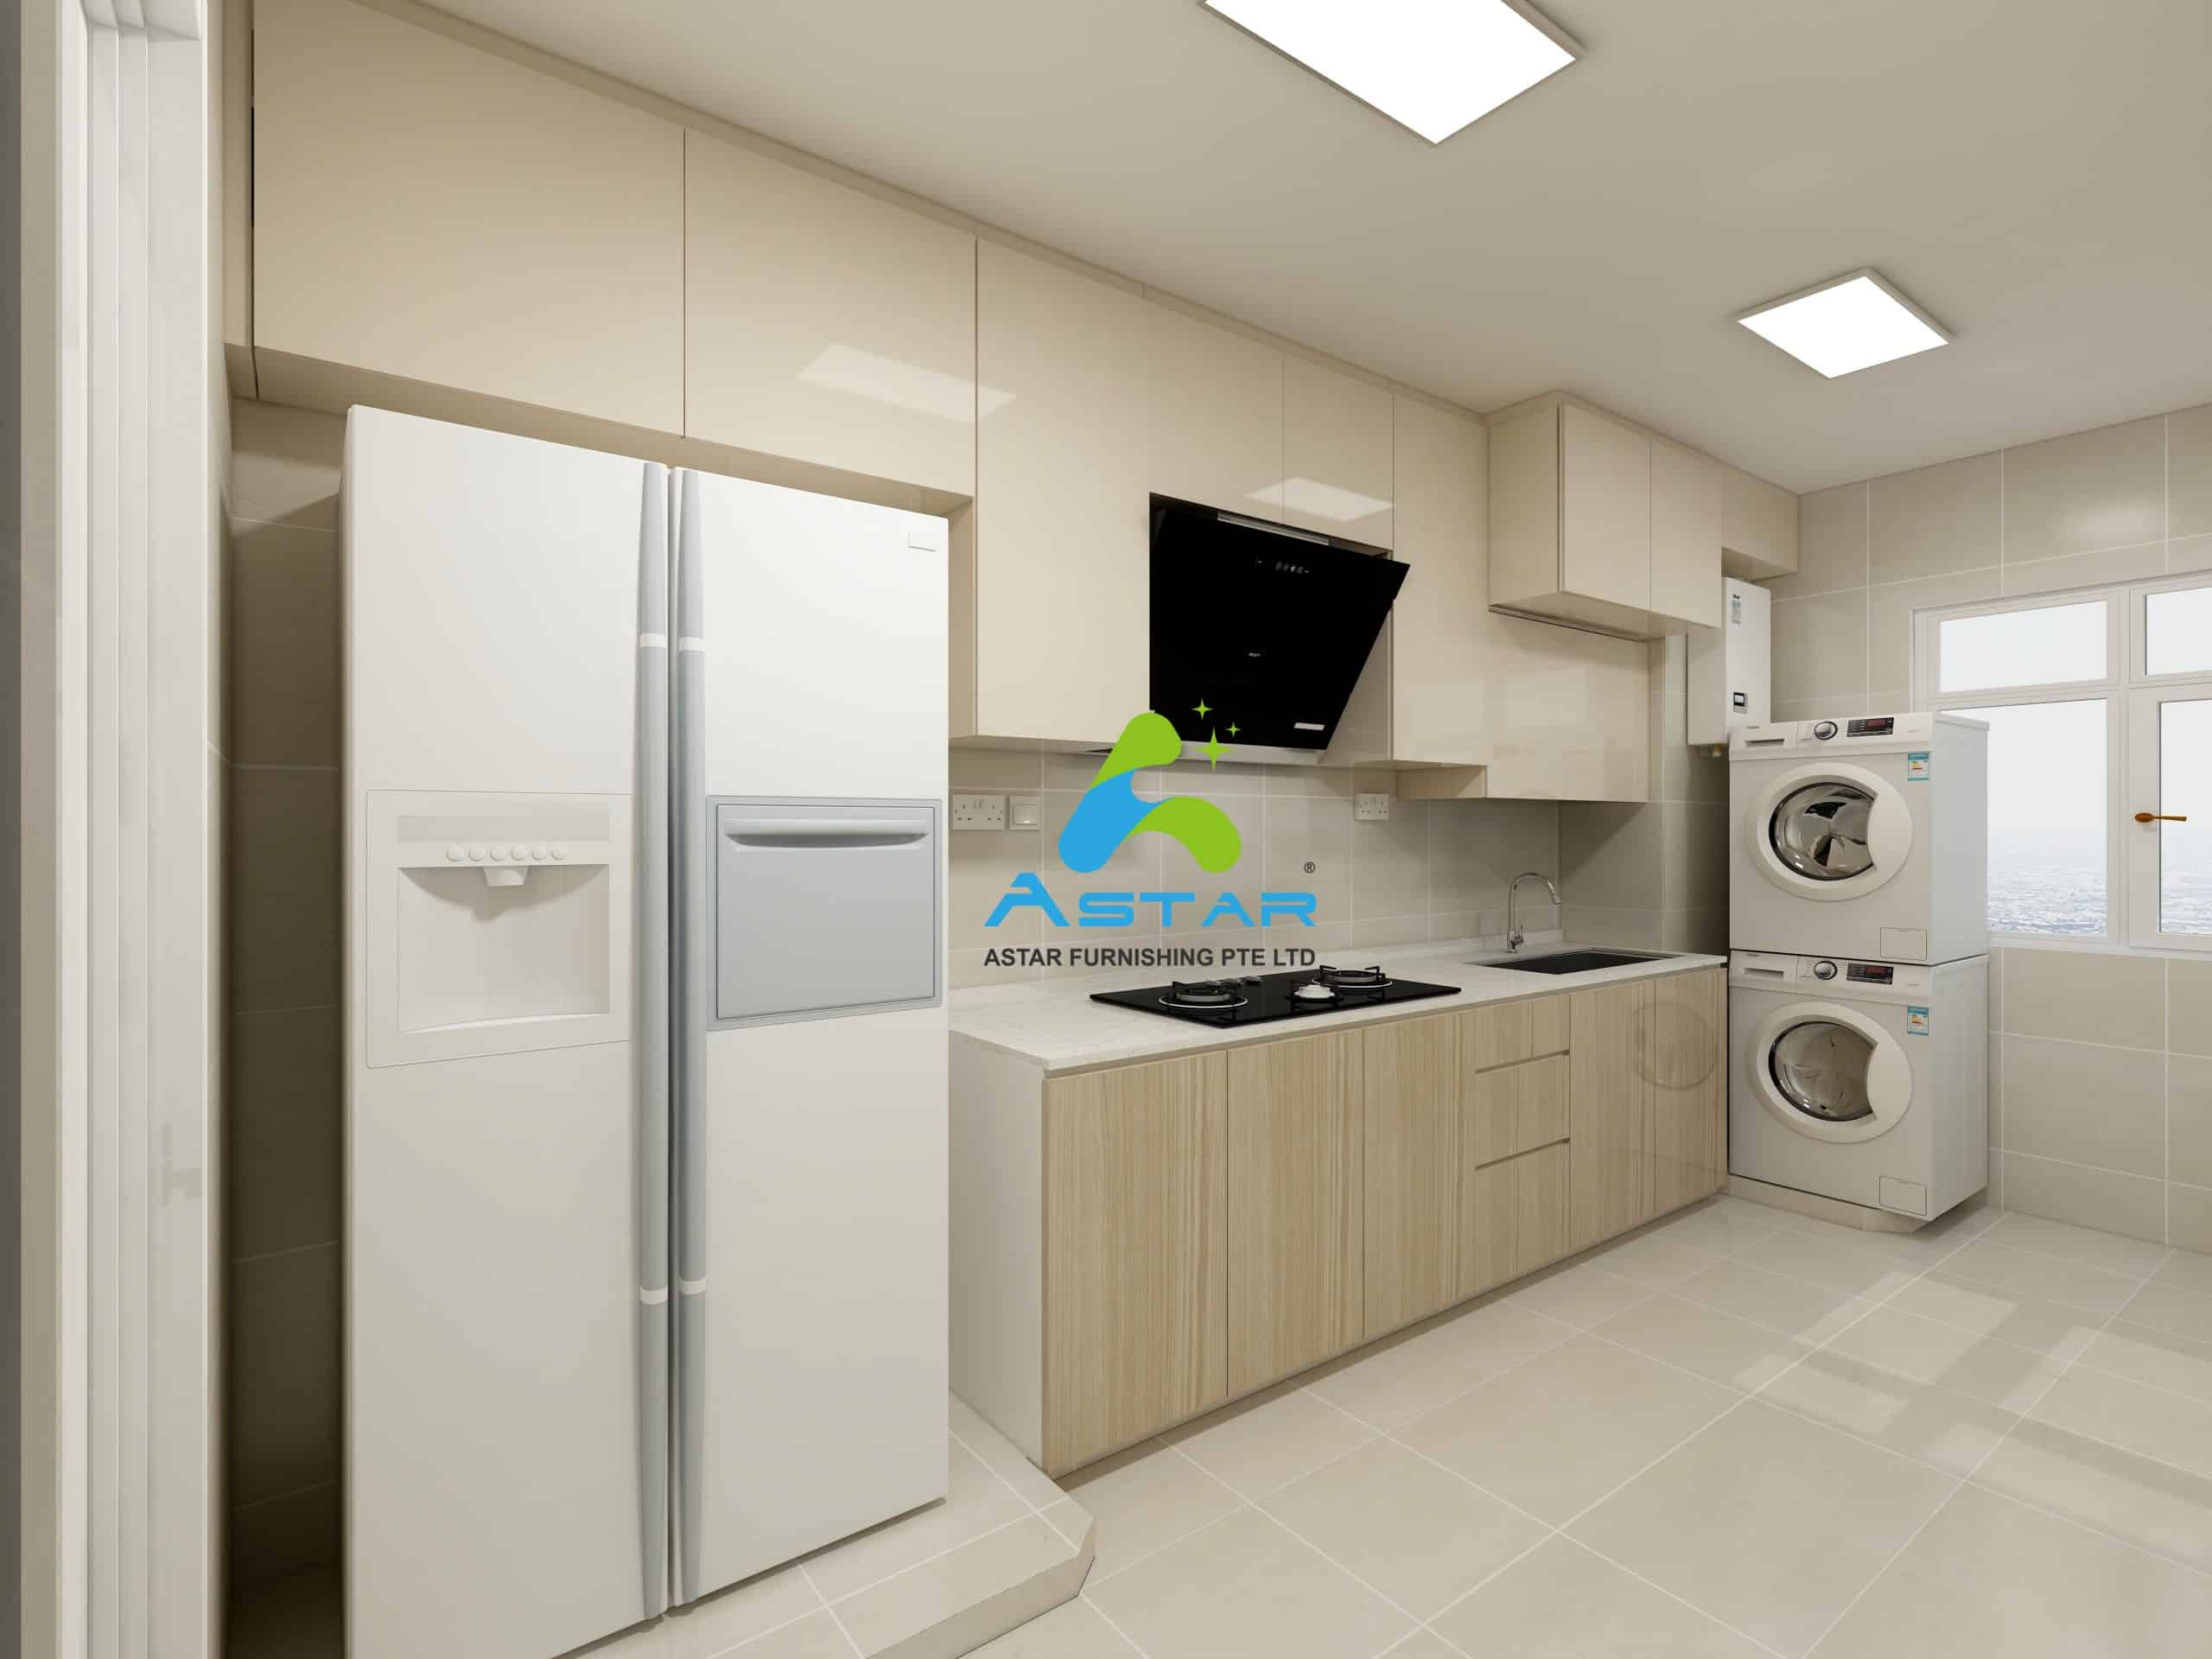 a star furnishing aluminium projects 13. Blk 466A Sembawang Drive 050 scaled